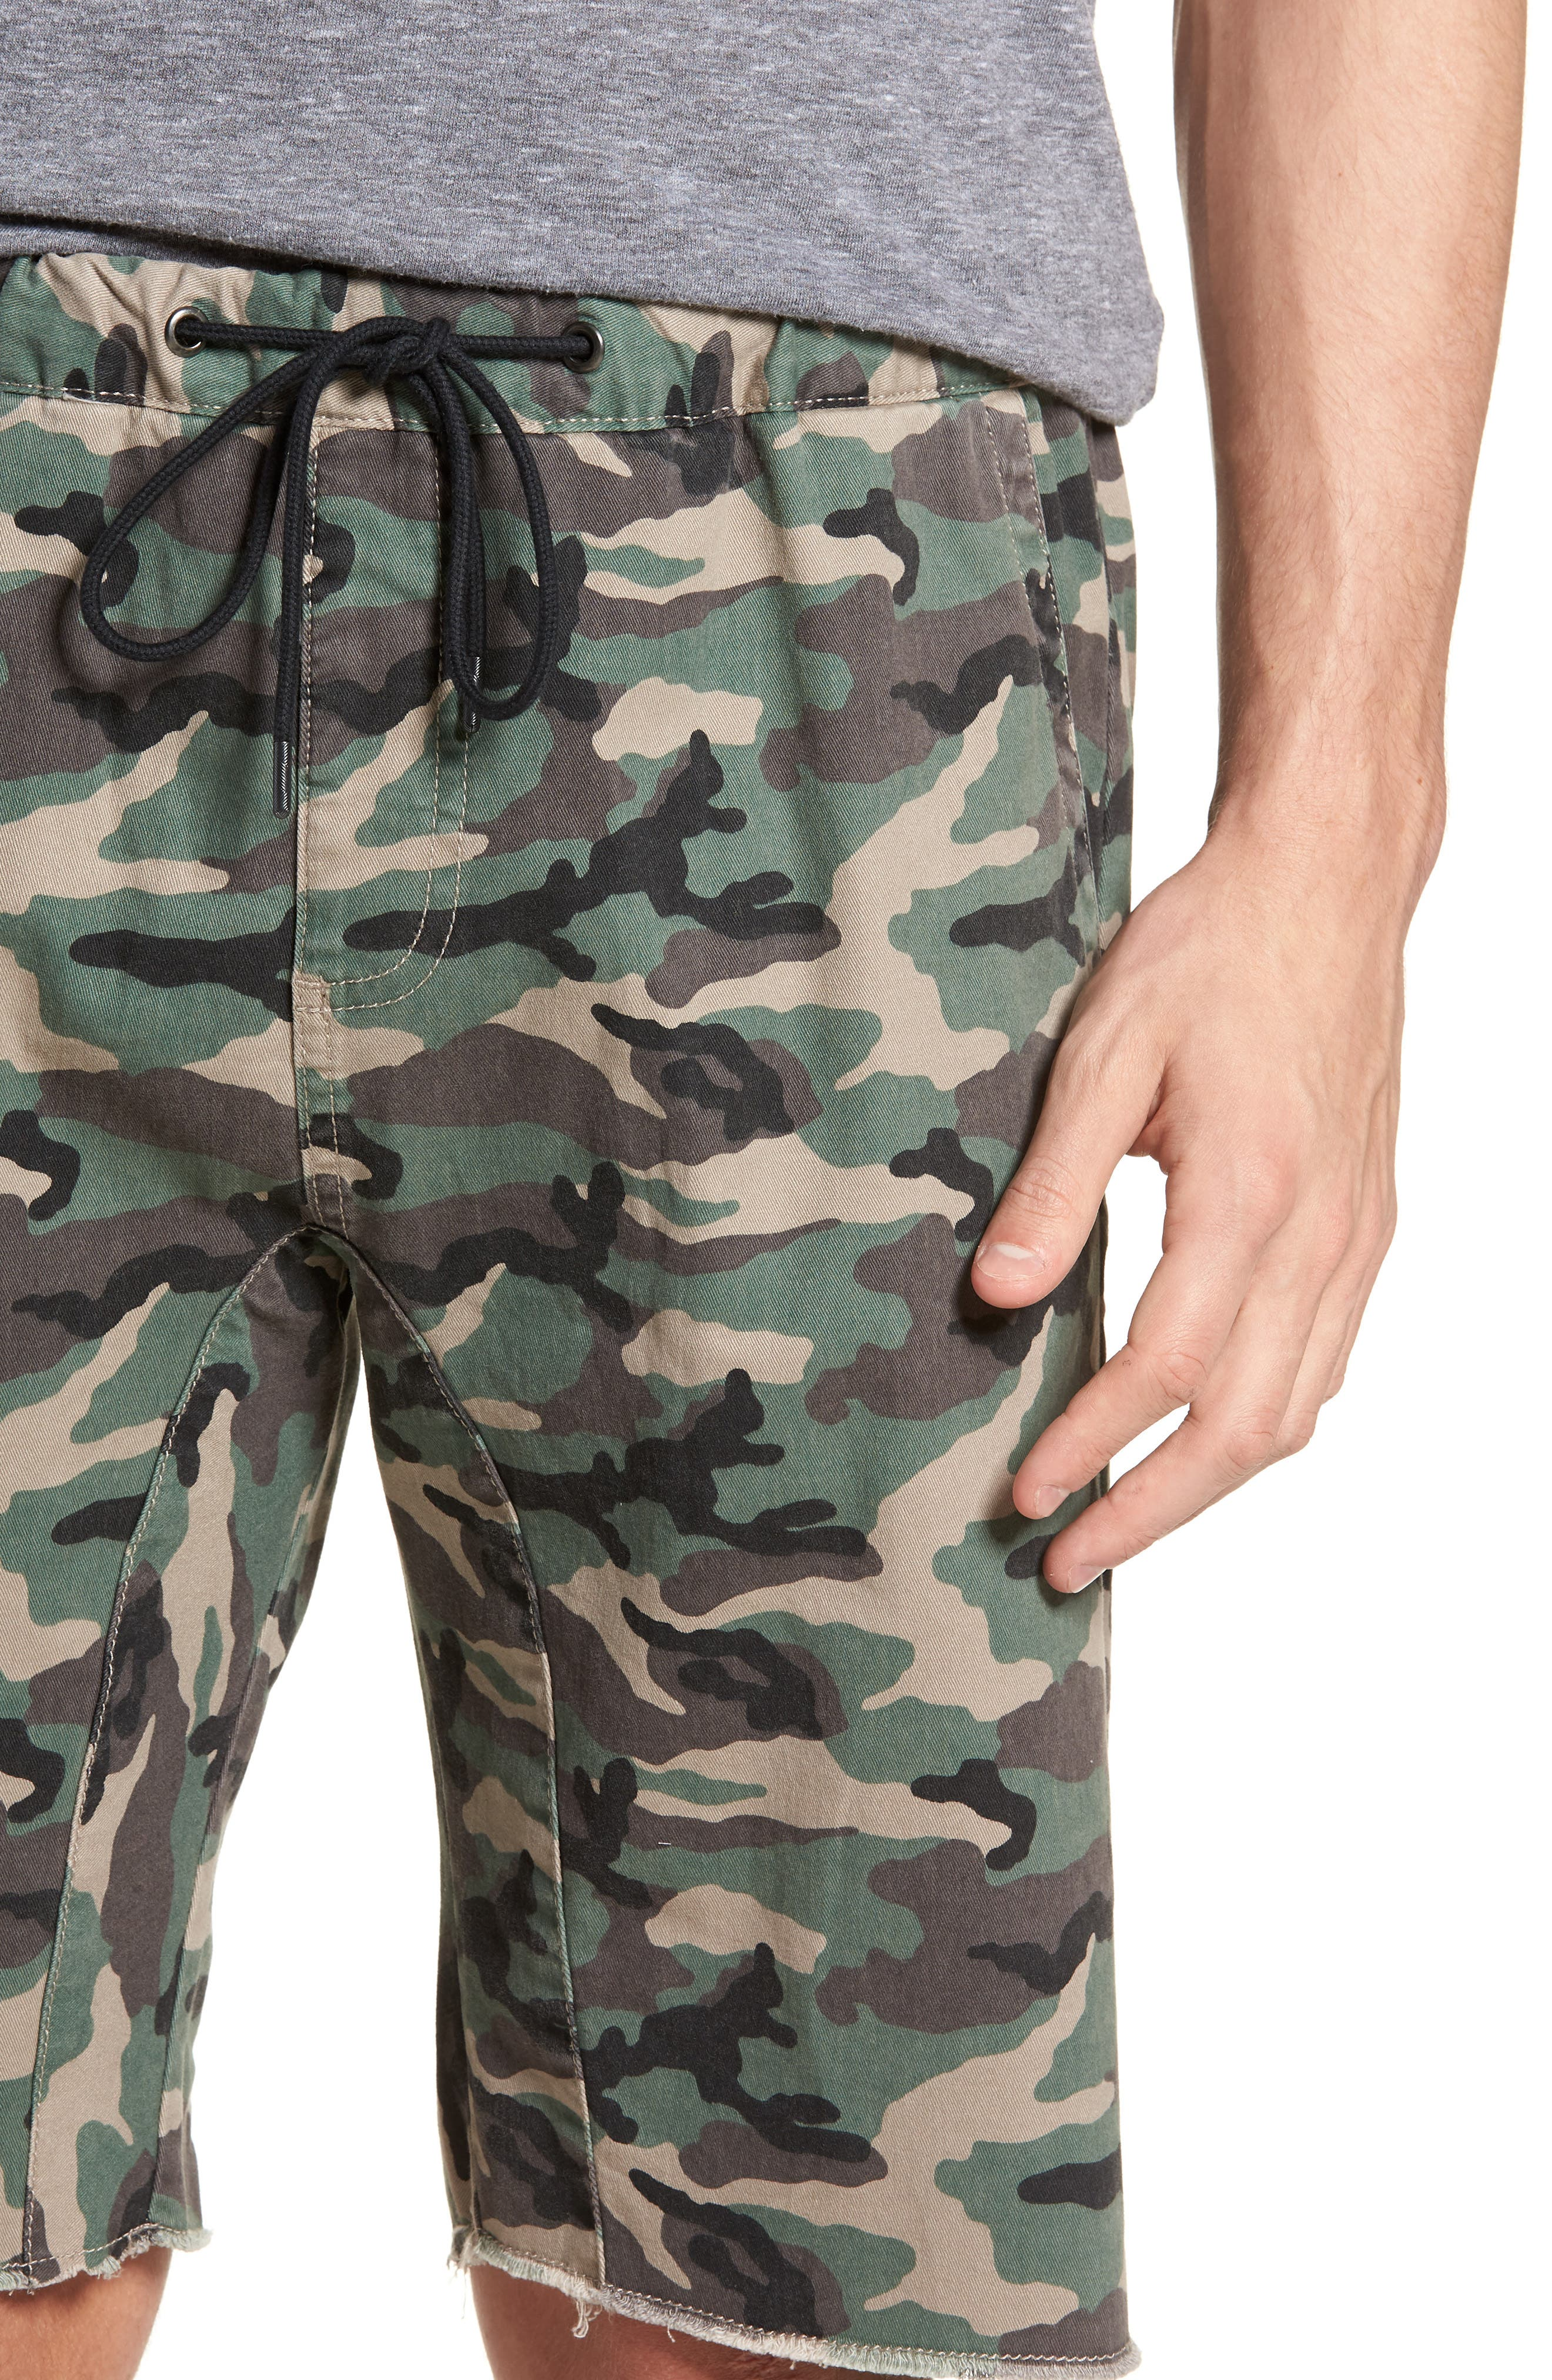 Camo Print Cutoff Twill Shorts,                             Alternate thumbnail 4, color,                             210